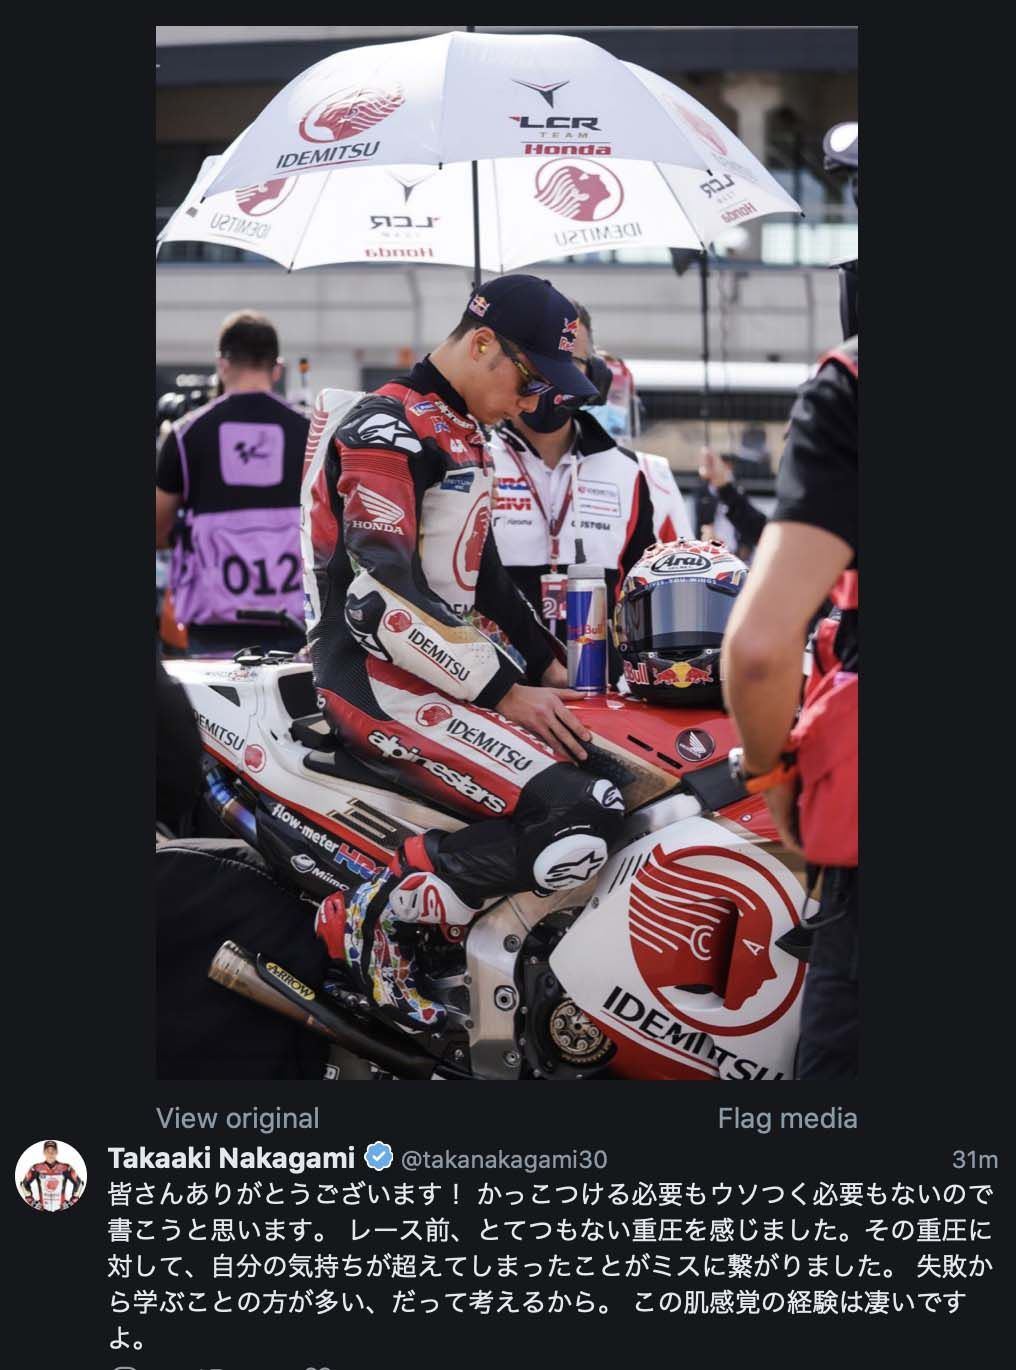 """MotoGP, Nakagami: """"tremendous pressure, I do not need to be cool or lie"""